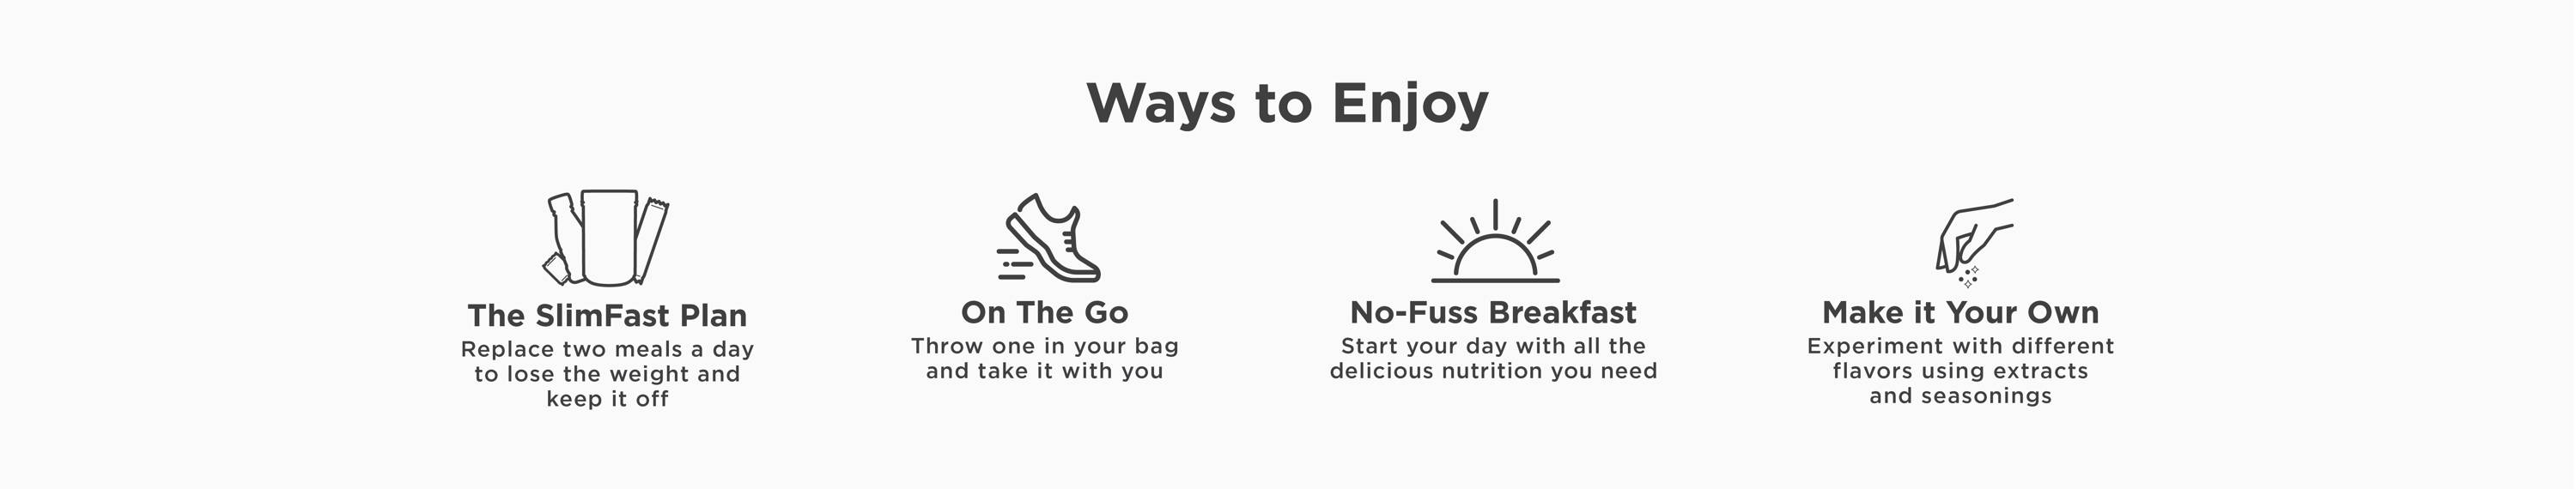 Ways to enjoy Keto Shakes: Use them on the SlimFast plan, take them on the go, have a no-fuss breakfast, or make it your own